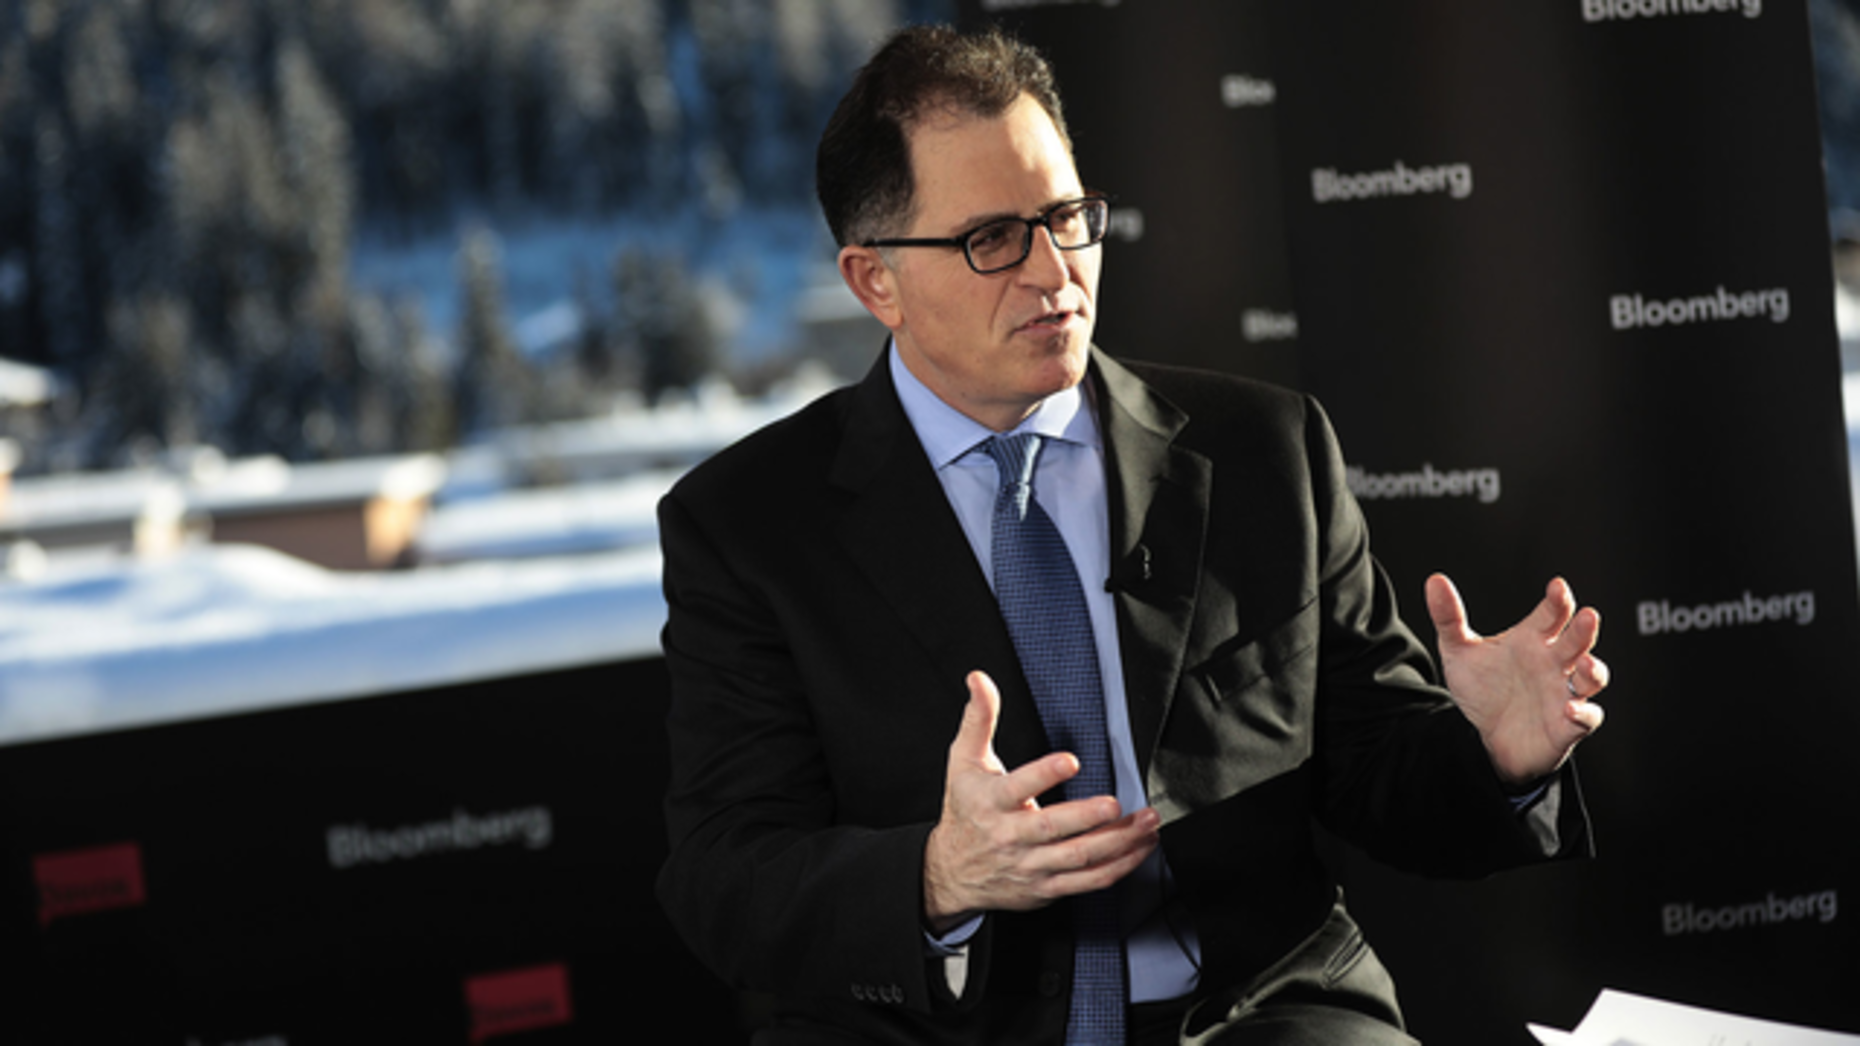 Dell Technologies CEO Michael Dell. Photo by Bloomberg.